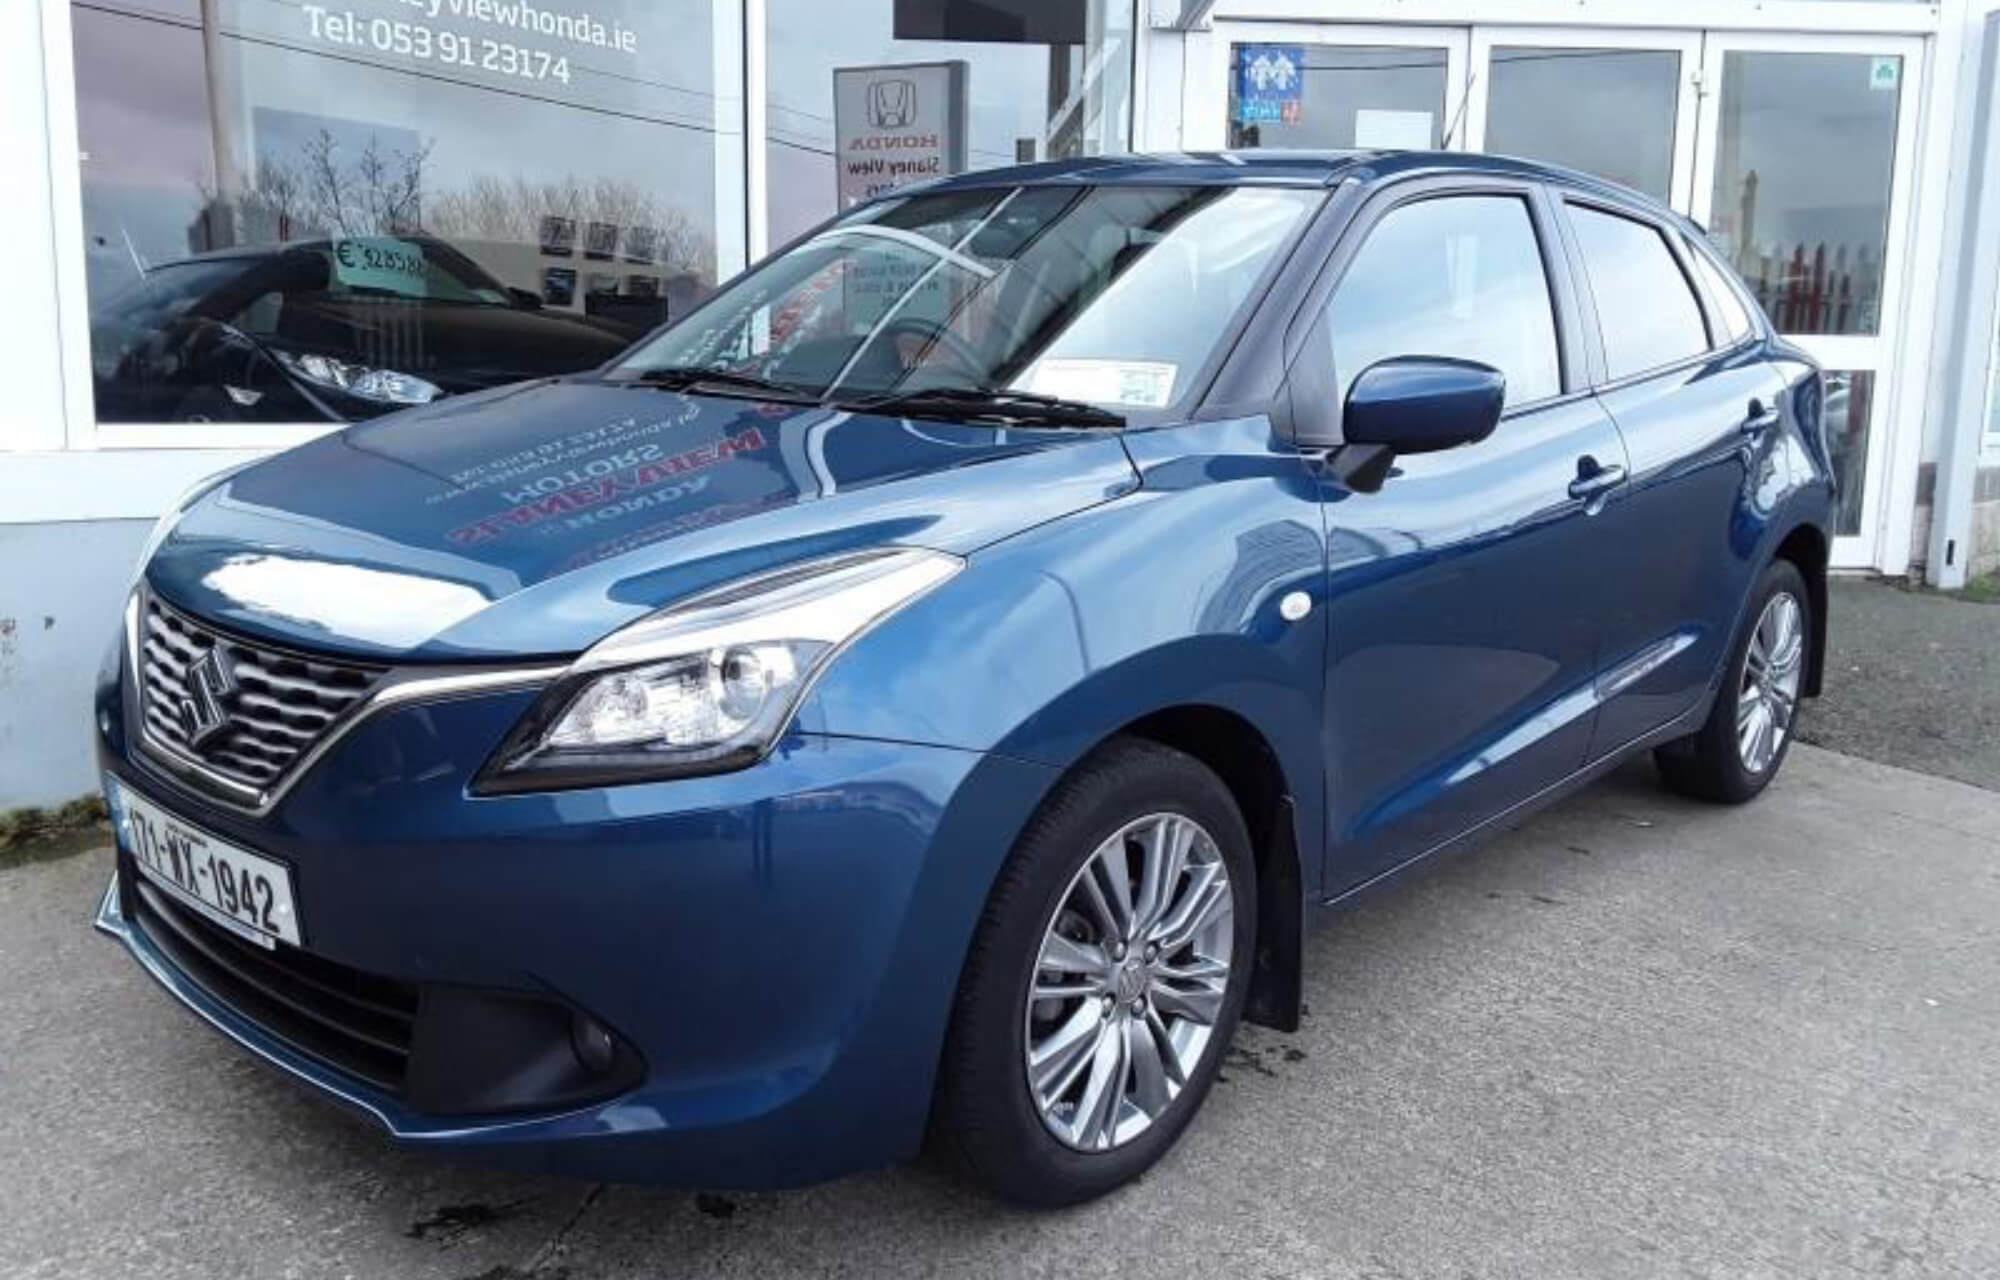 Save €1,000 off 2017 (171) Suzuki Baleno 1.0 Petrol SZ-T available at Slaney View Motors Wexford